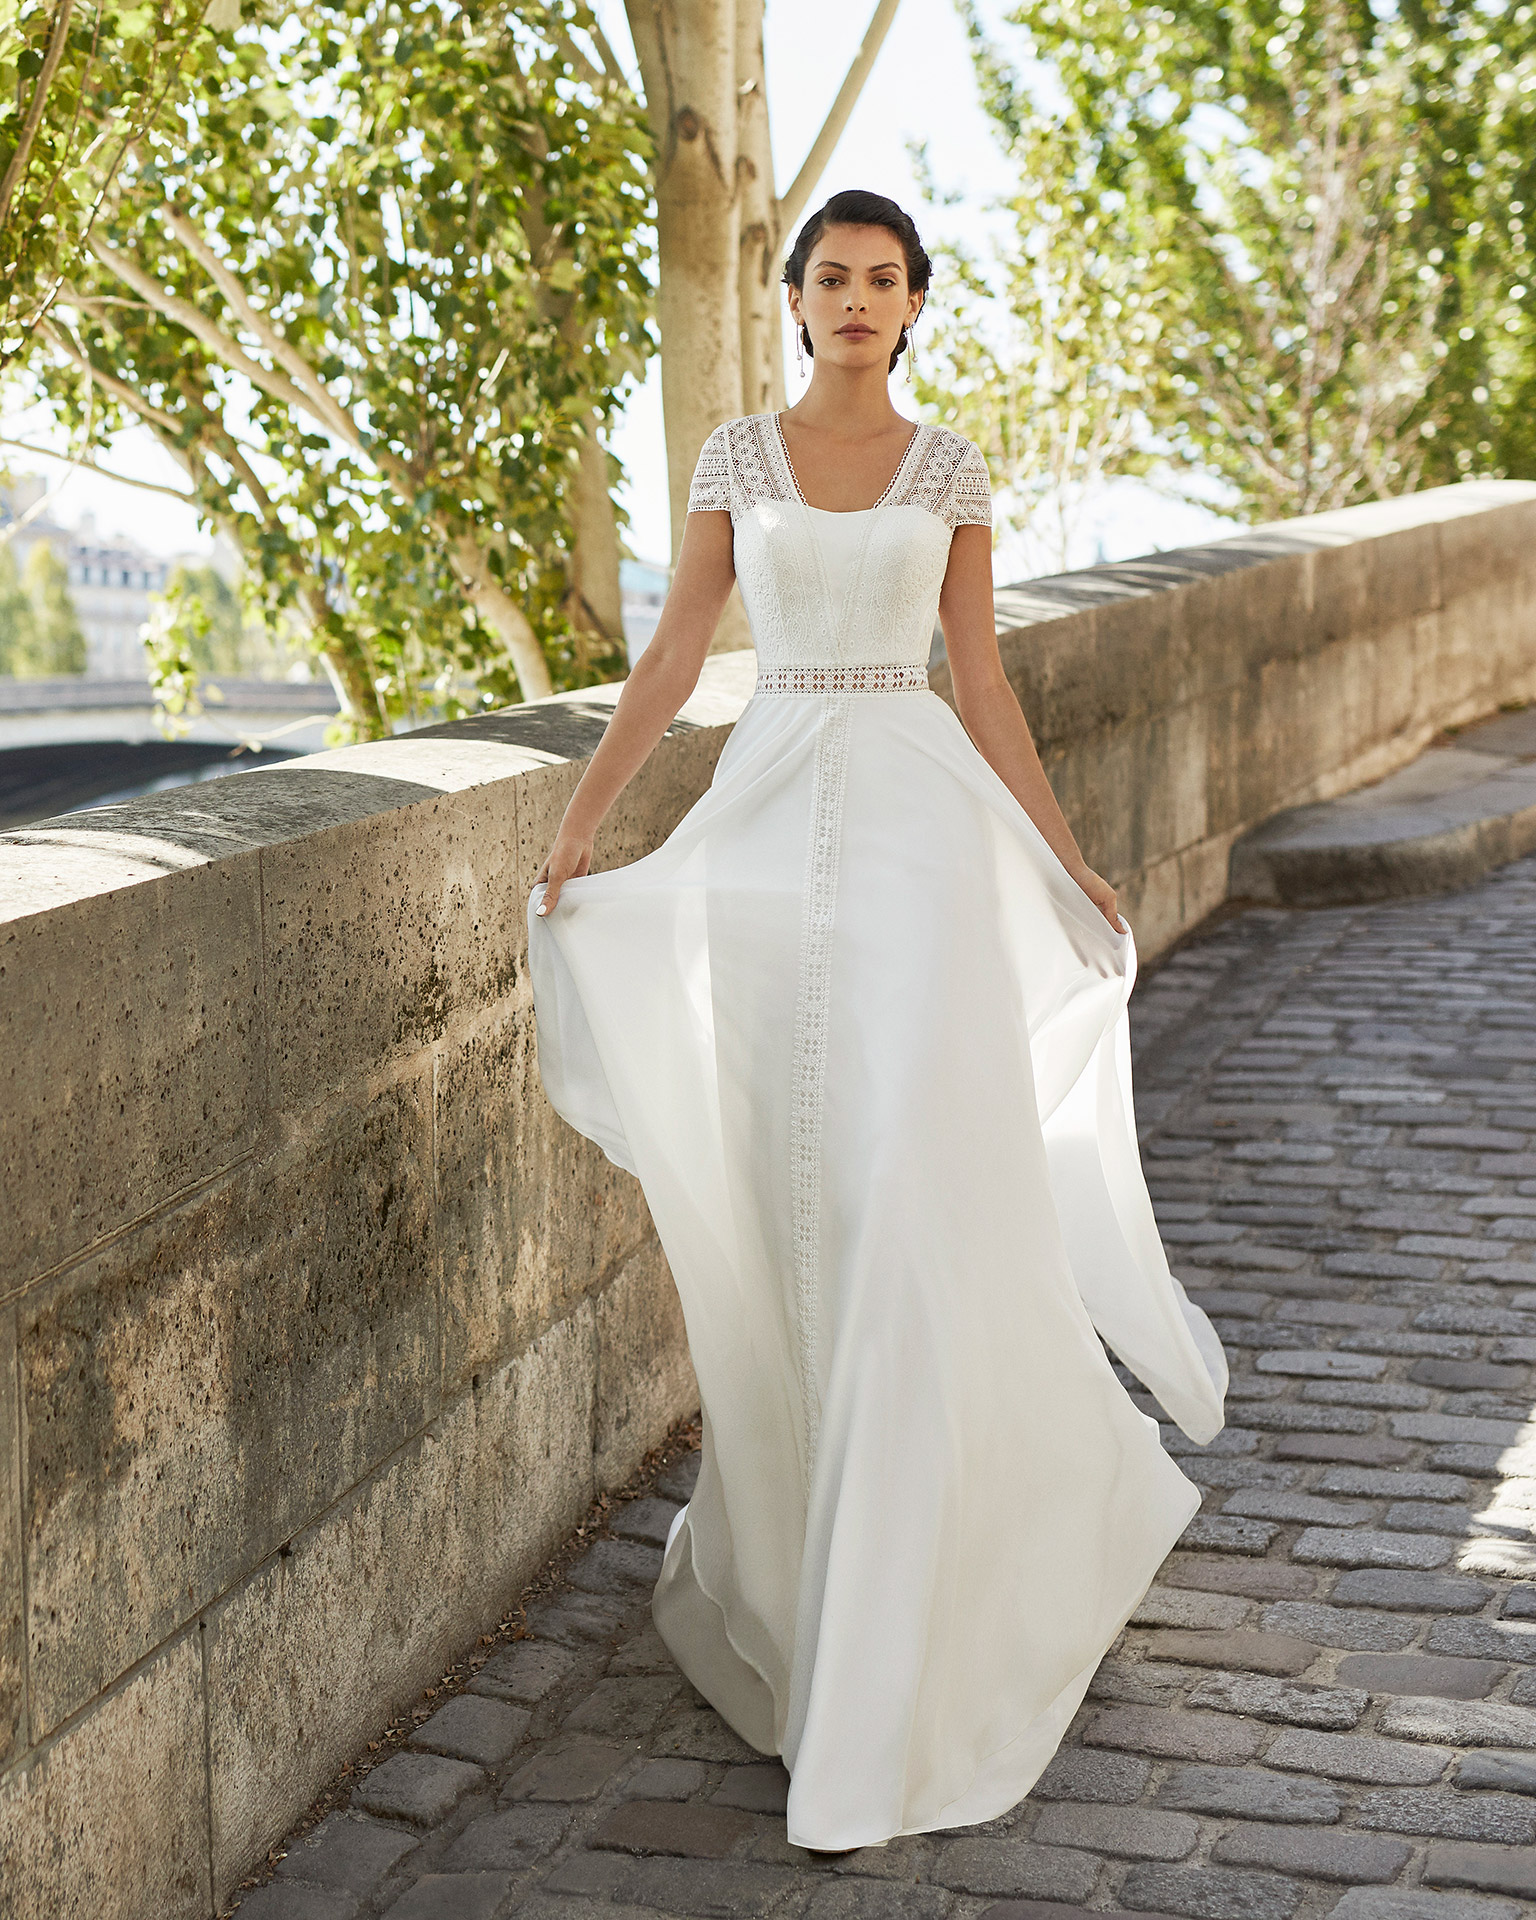 Wedding dress in chiffon. Strapless neckline with short lace sleeves and triangle back in lace. 2021 ALMANOVIA Collection.